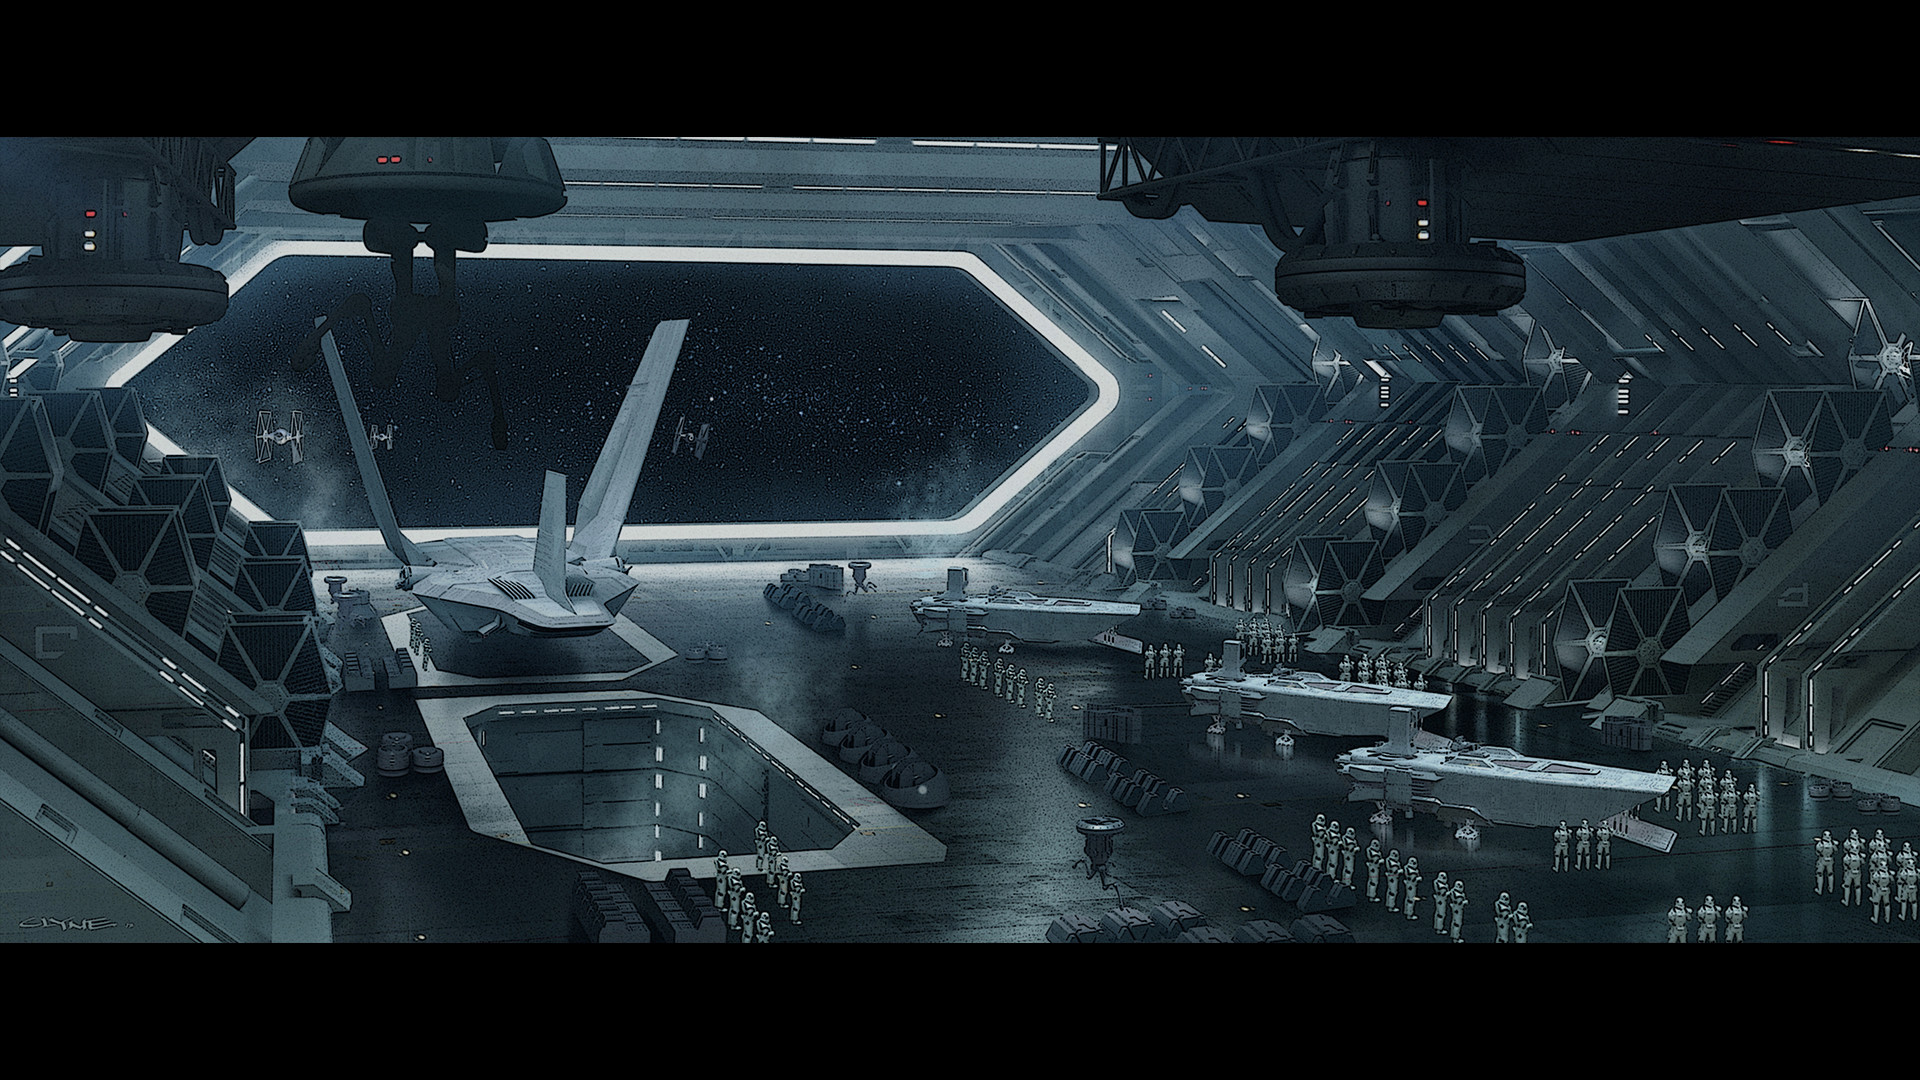 TIE Loading Wide – James Clyne conceived this look at the hangar of Hux and  Ren's flagship Star Destroyer, Finalizer. Although the design of Ren's  shuttle …